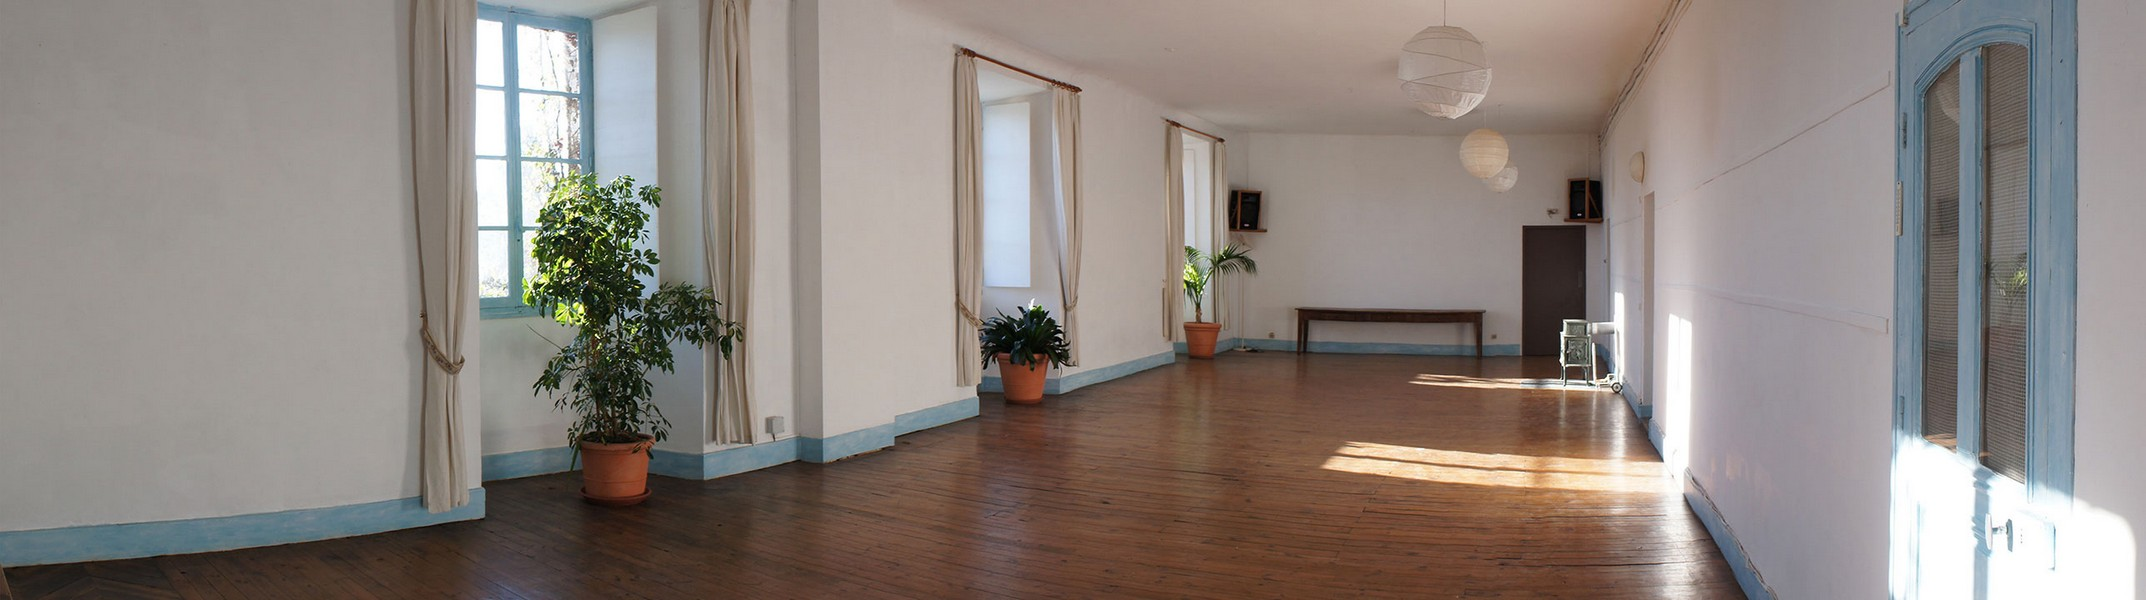 Formations -Salle Blanche